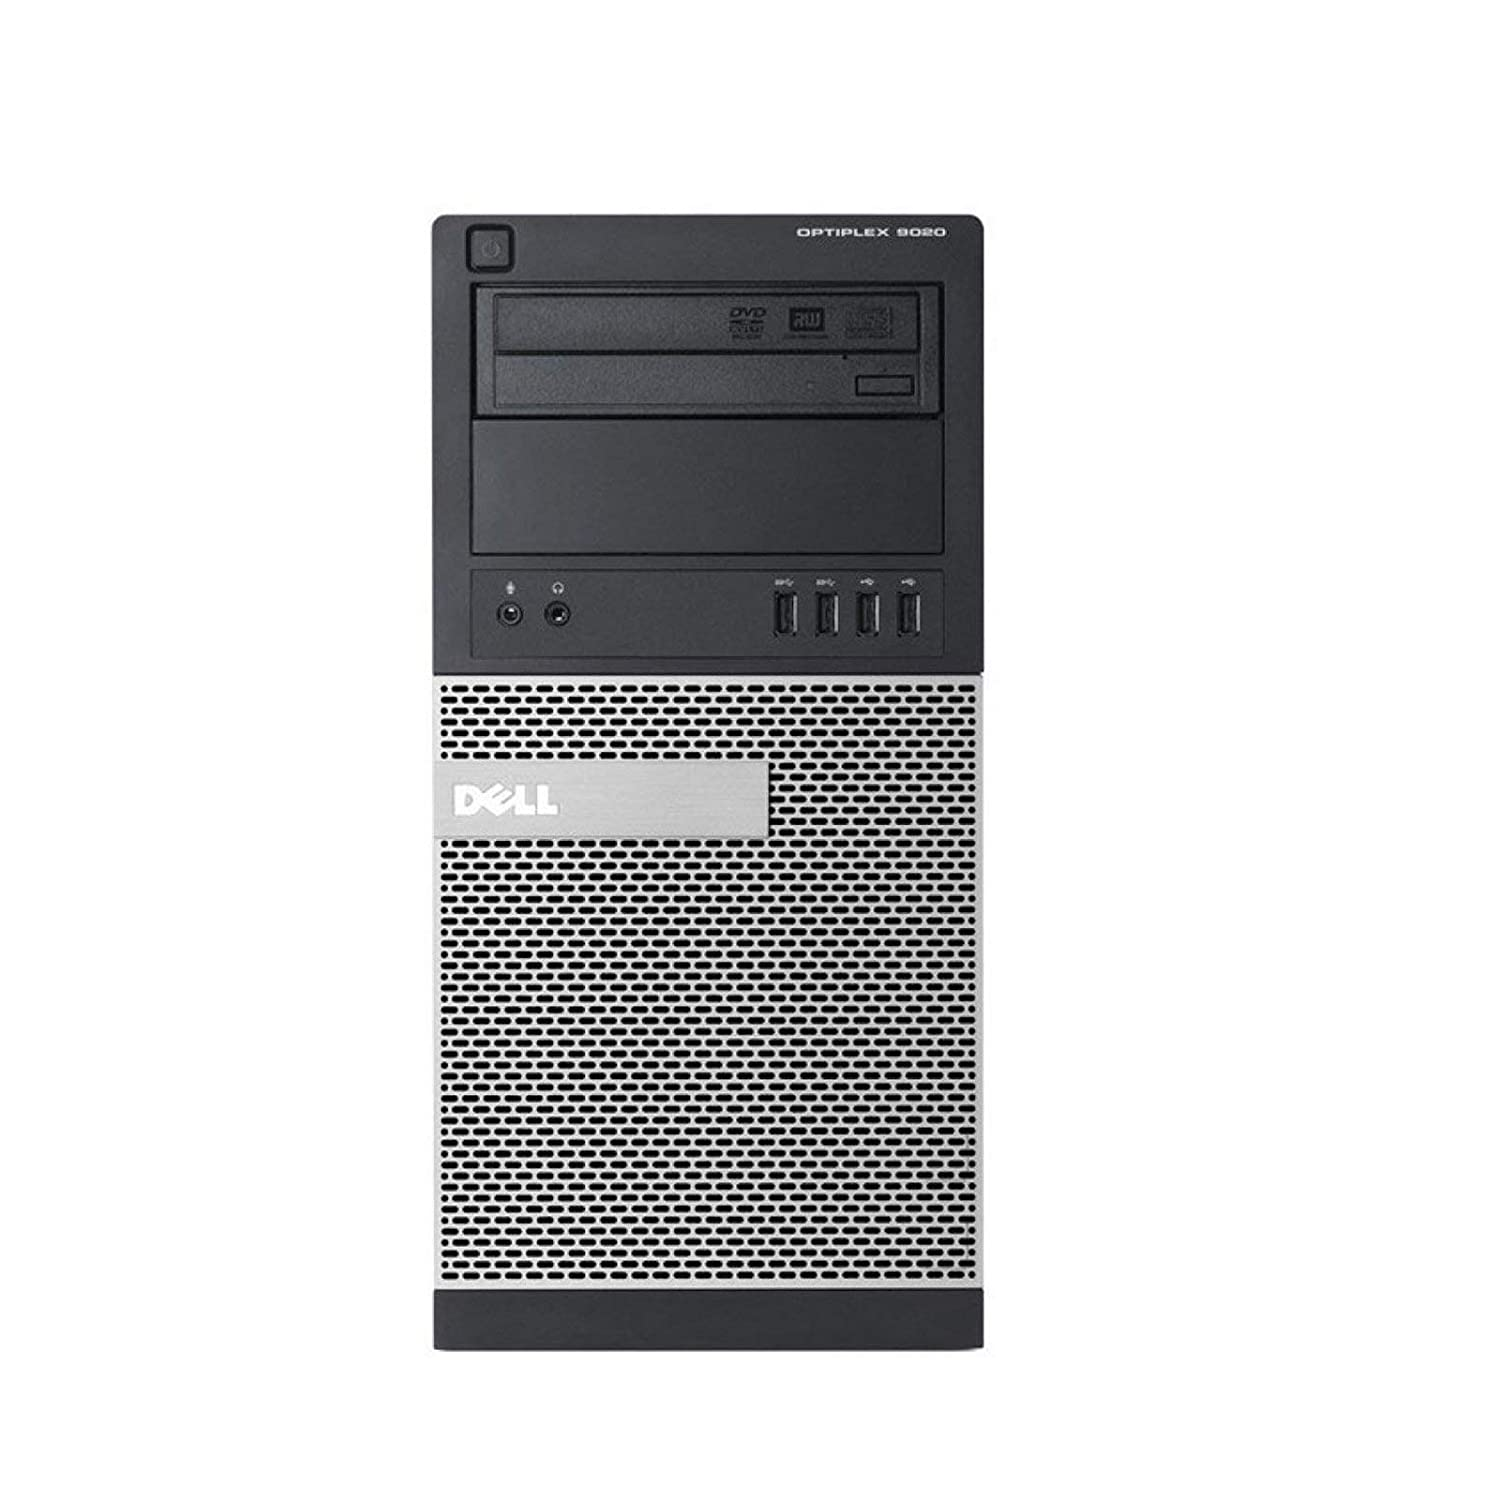 Dell Optiplex 9020 Mini Tower Desktop PC, Intel Core i5-4570-3.2 GHz, 16GB Ram, 256GB SSD+2TB SATA WiFi, DVD-RW, Windows 10 Pro (Renewed)